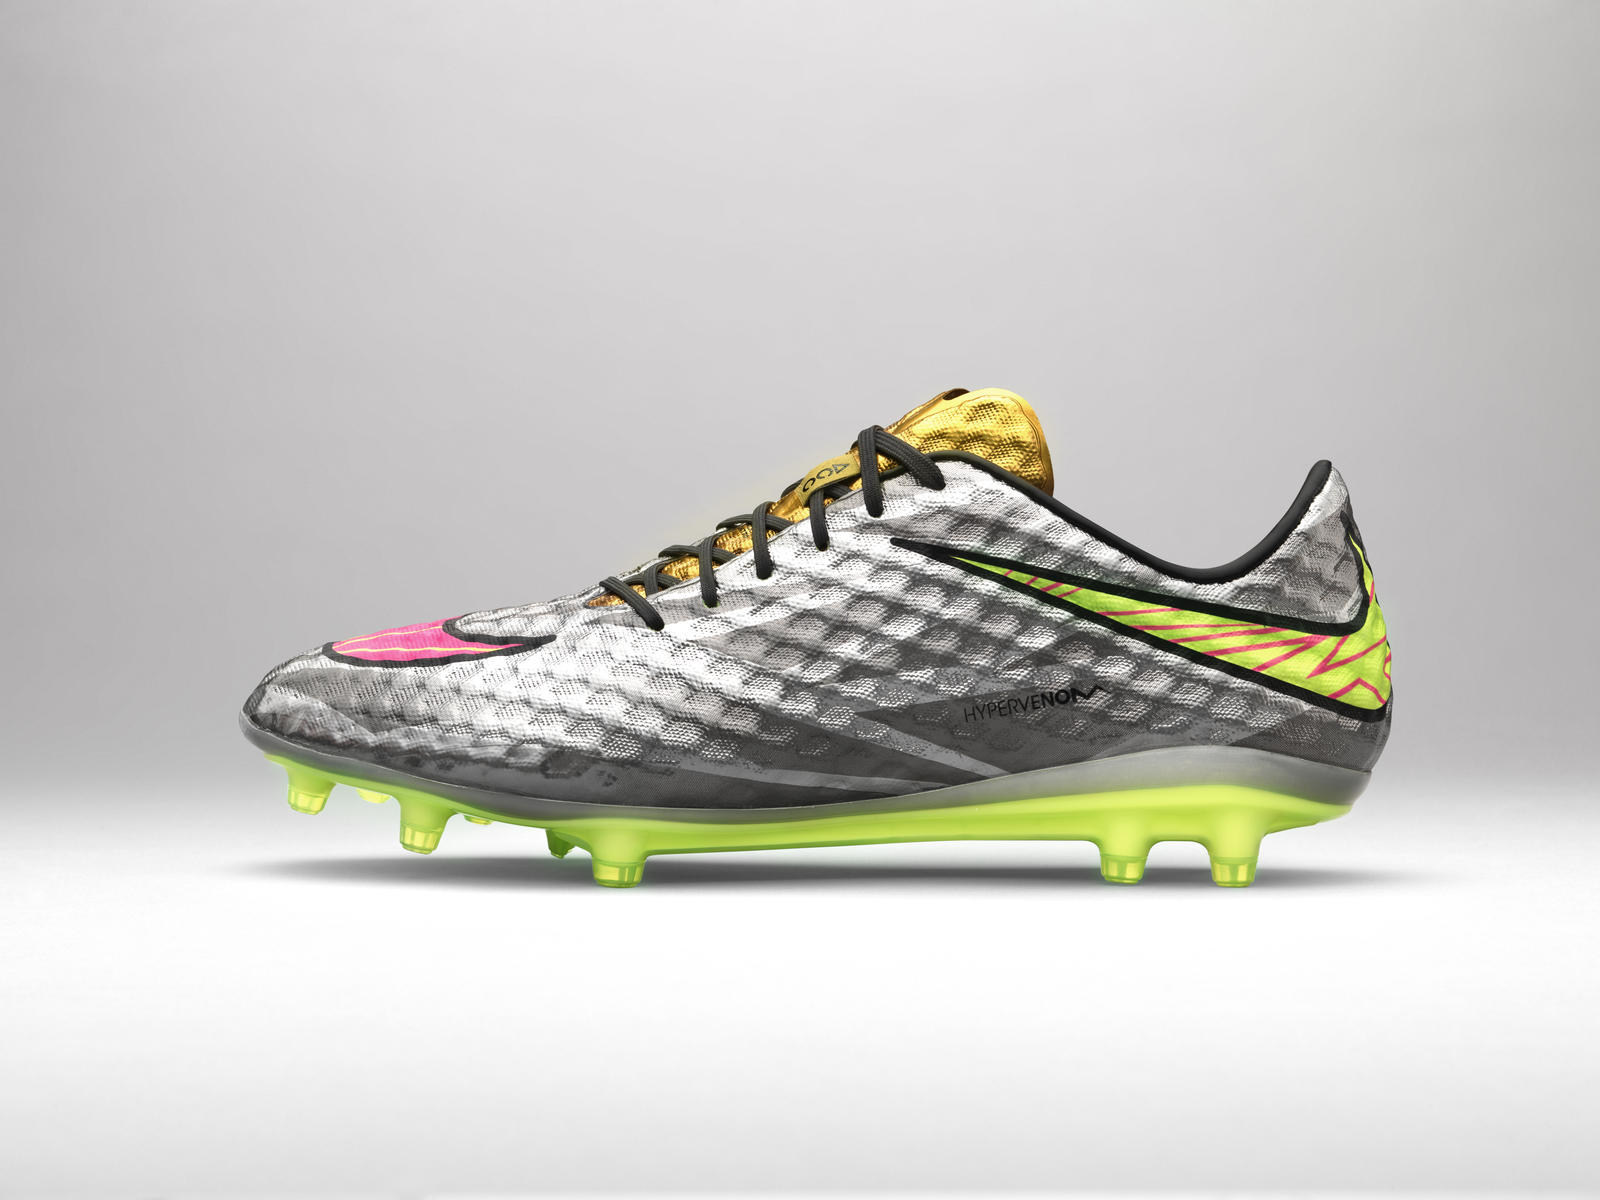 Hypervenom Liquid Diamond Neymar 2015